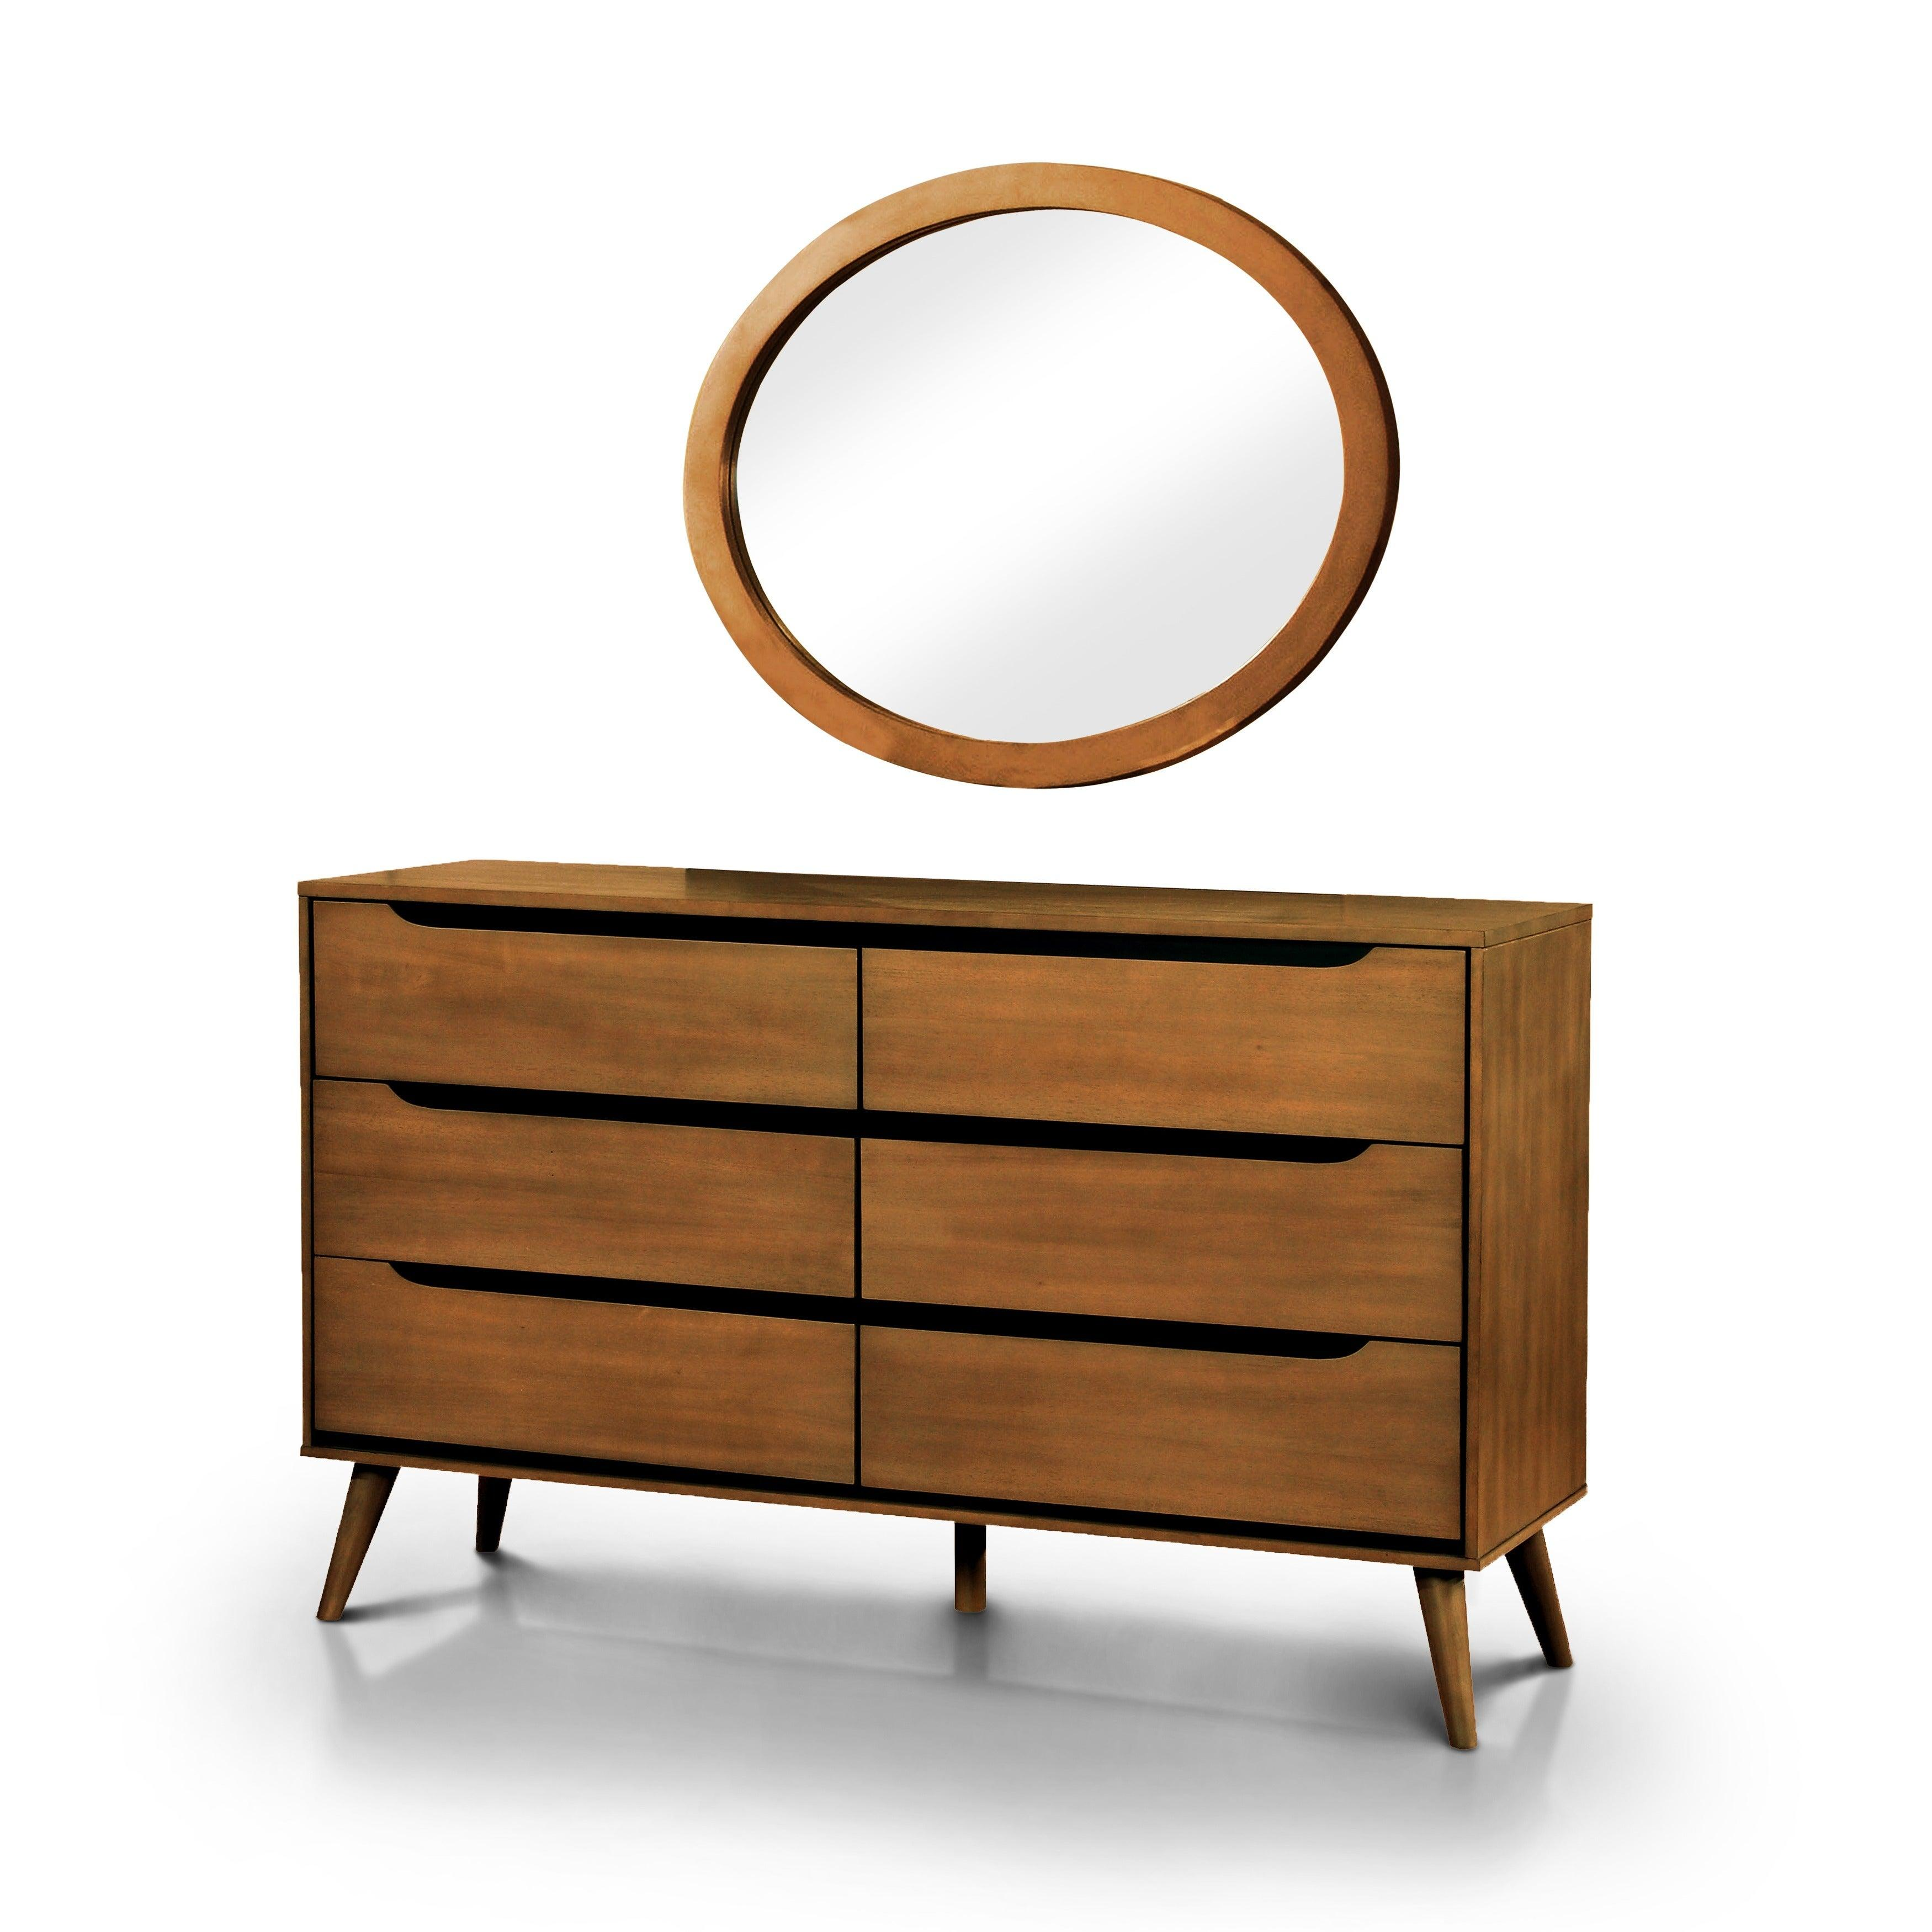 Tables and Trolleys - Modern Brown Bed Set - Bedside table, Chest of Drawers Mirror